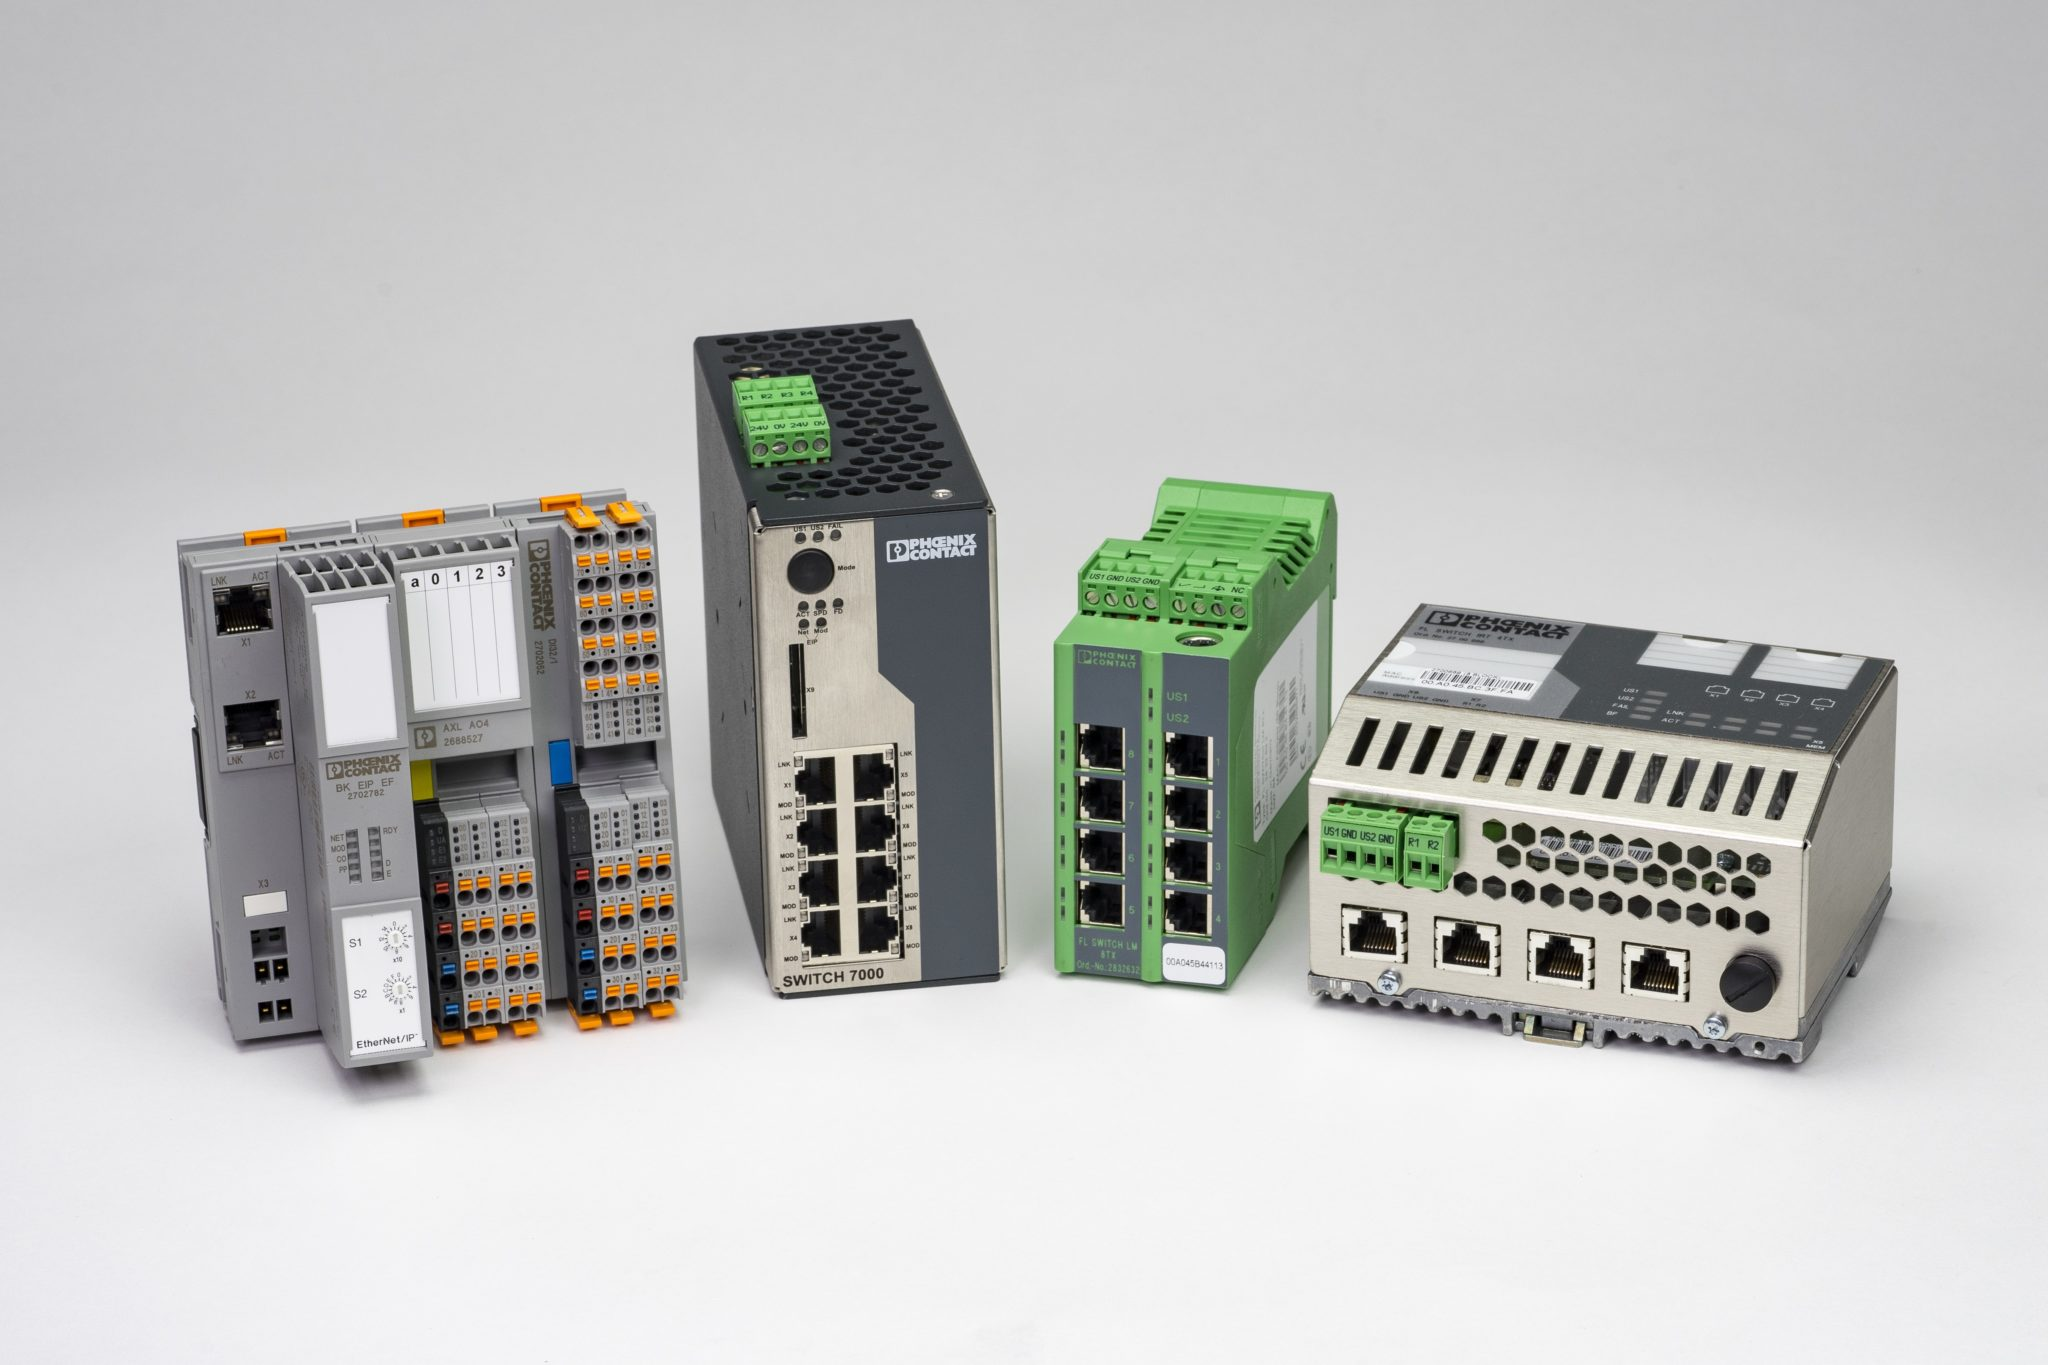 Kaman Automation EtherNetIP PROFINET 17 1244 AFD Group Photos 6 scaled